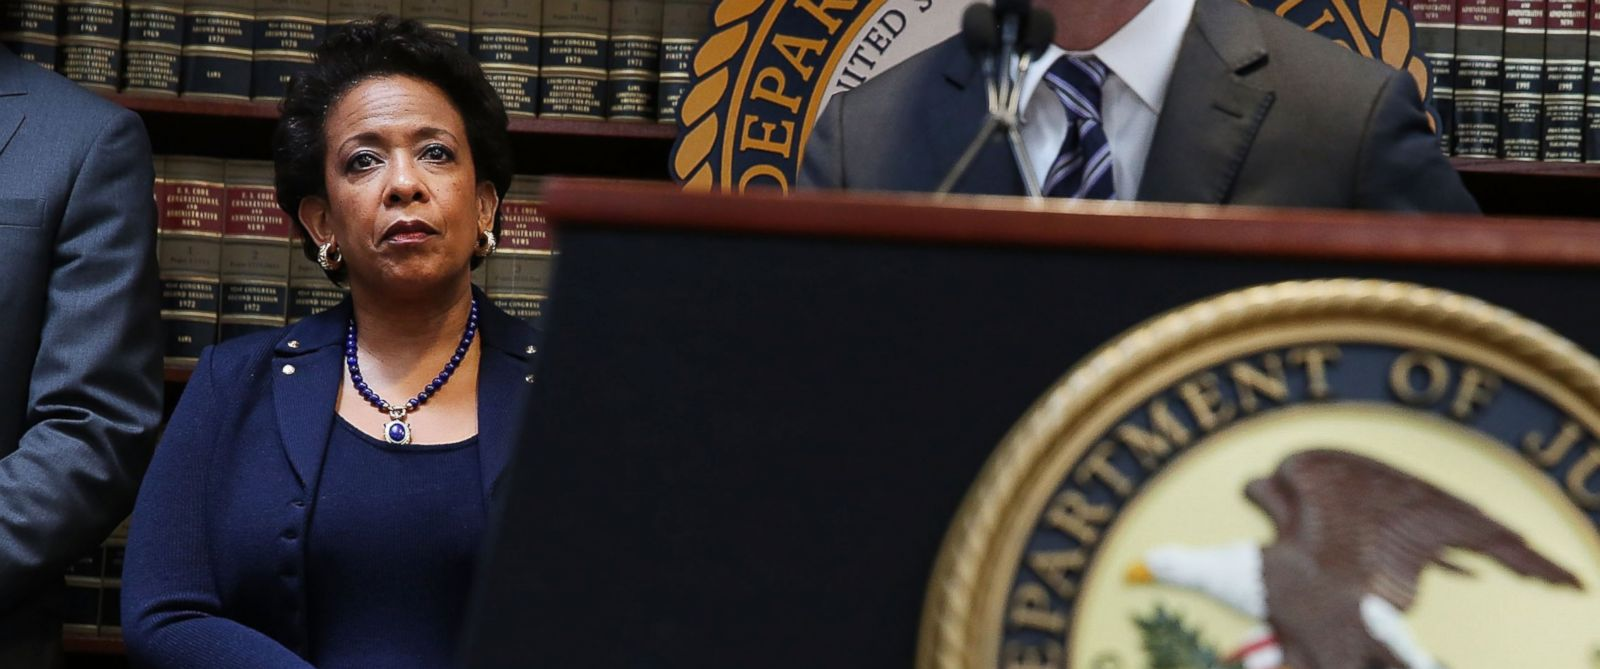 PHOTO: Attorney General Loretta Lynch attends a packed news conference at the U.S. Attorneys Office of the Eastern District of New York on May 27, 2015 in New York.